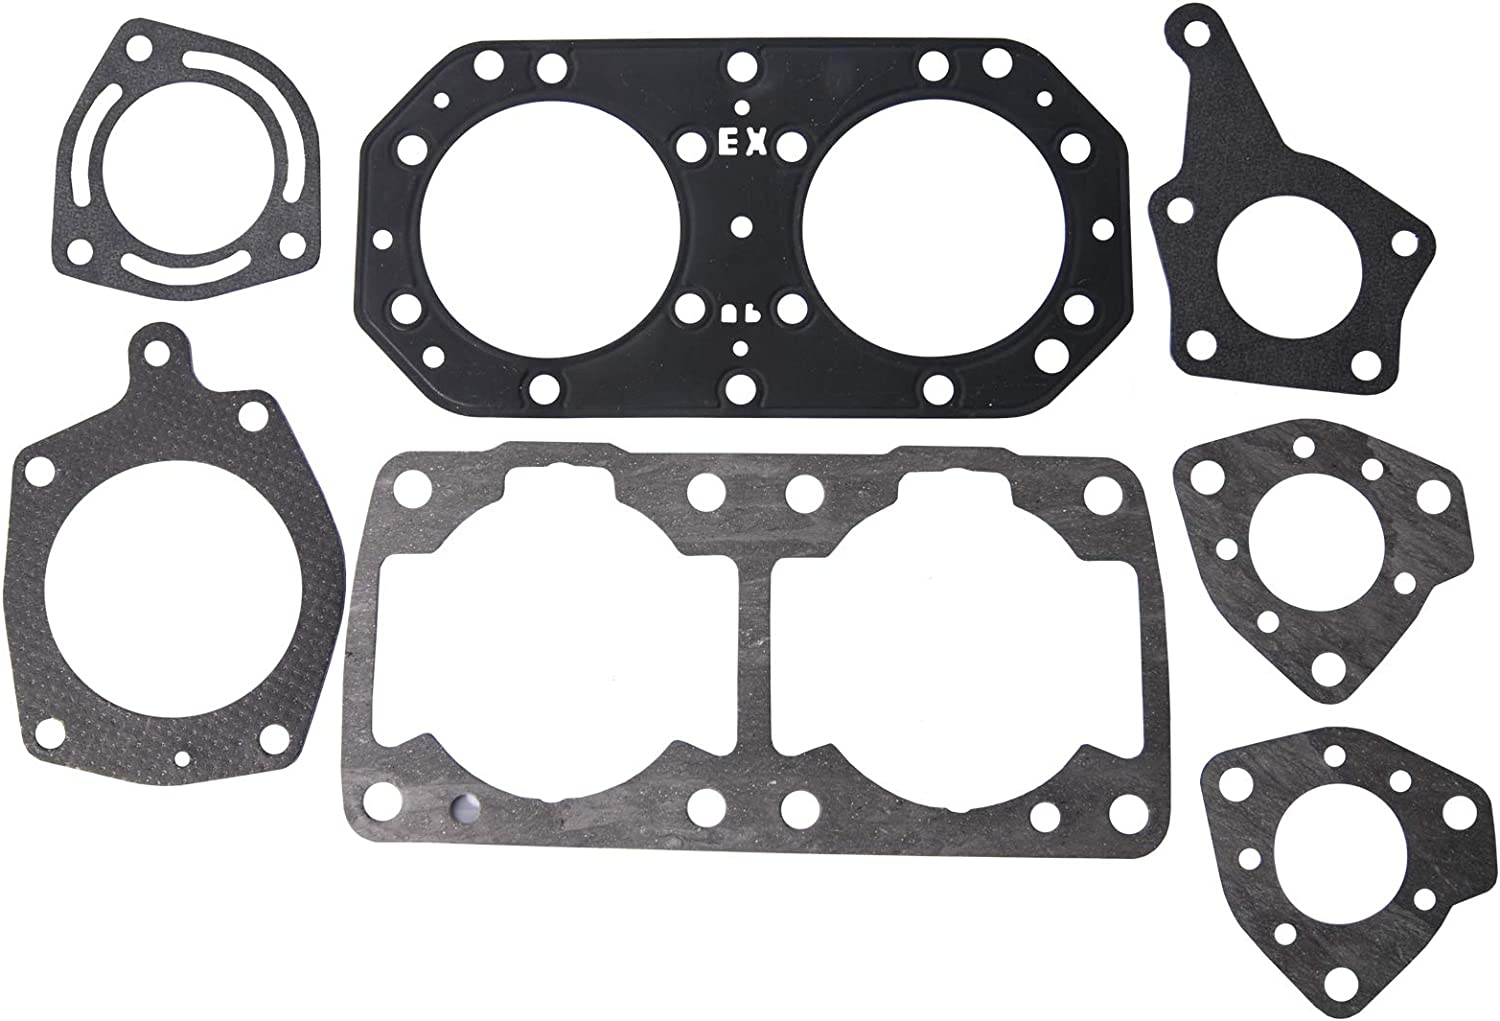 Kawasaki 750 Top End Gasket At Deluxe the price of surprise Kit SX 1994 1993 1996 SXI 1992 1995